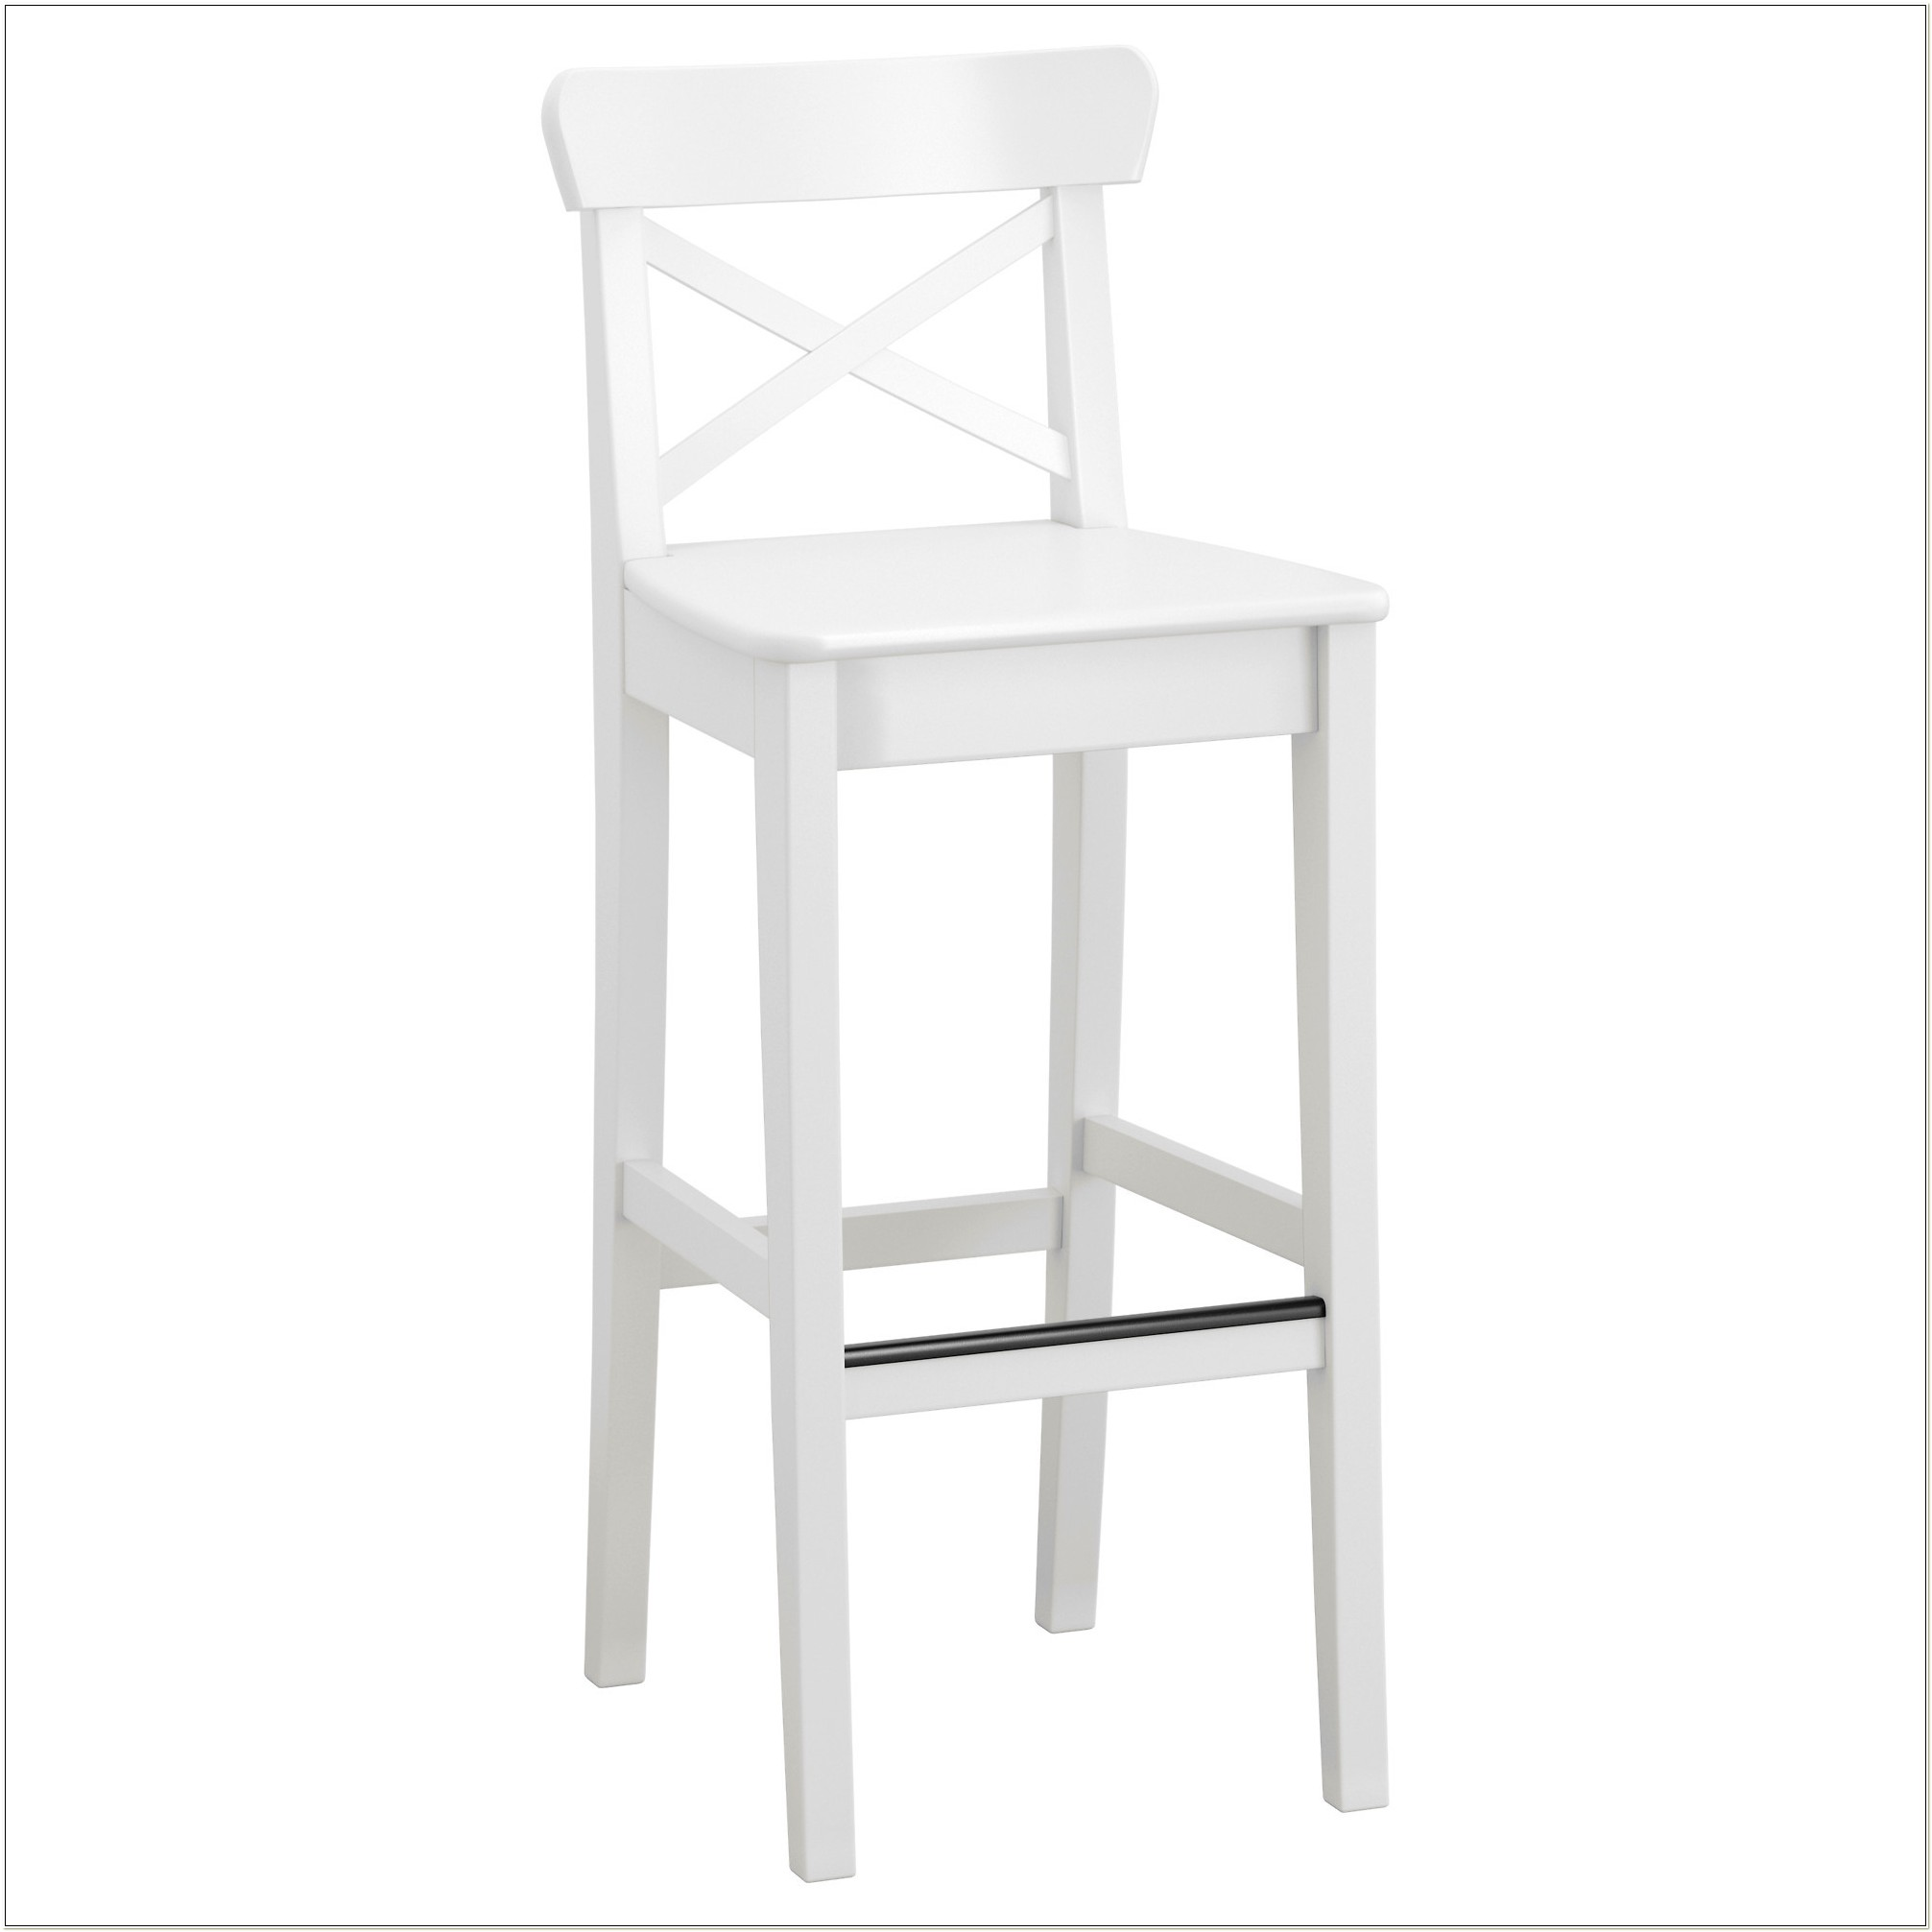 Oak Breakfast Bar Stools Ikea